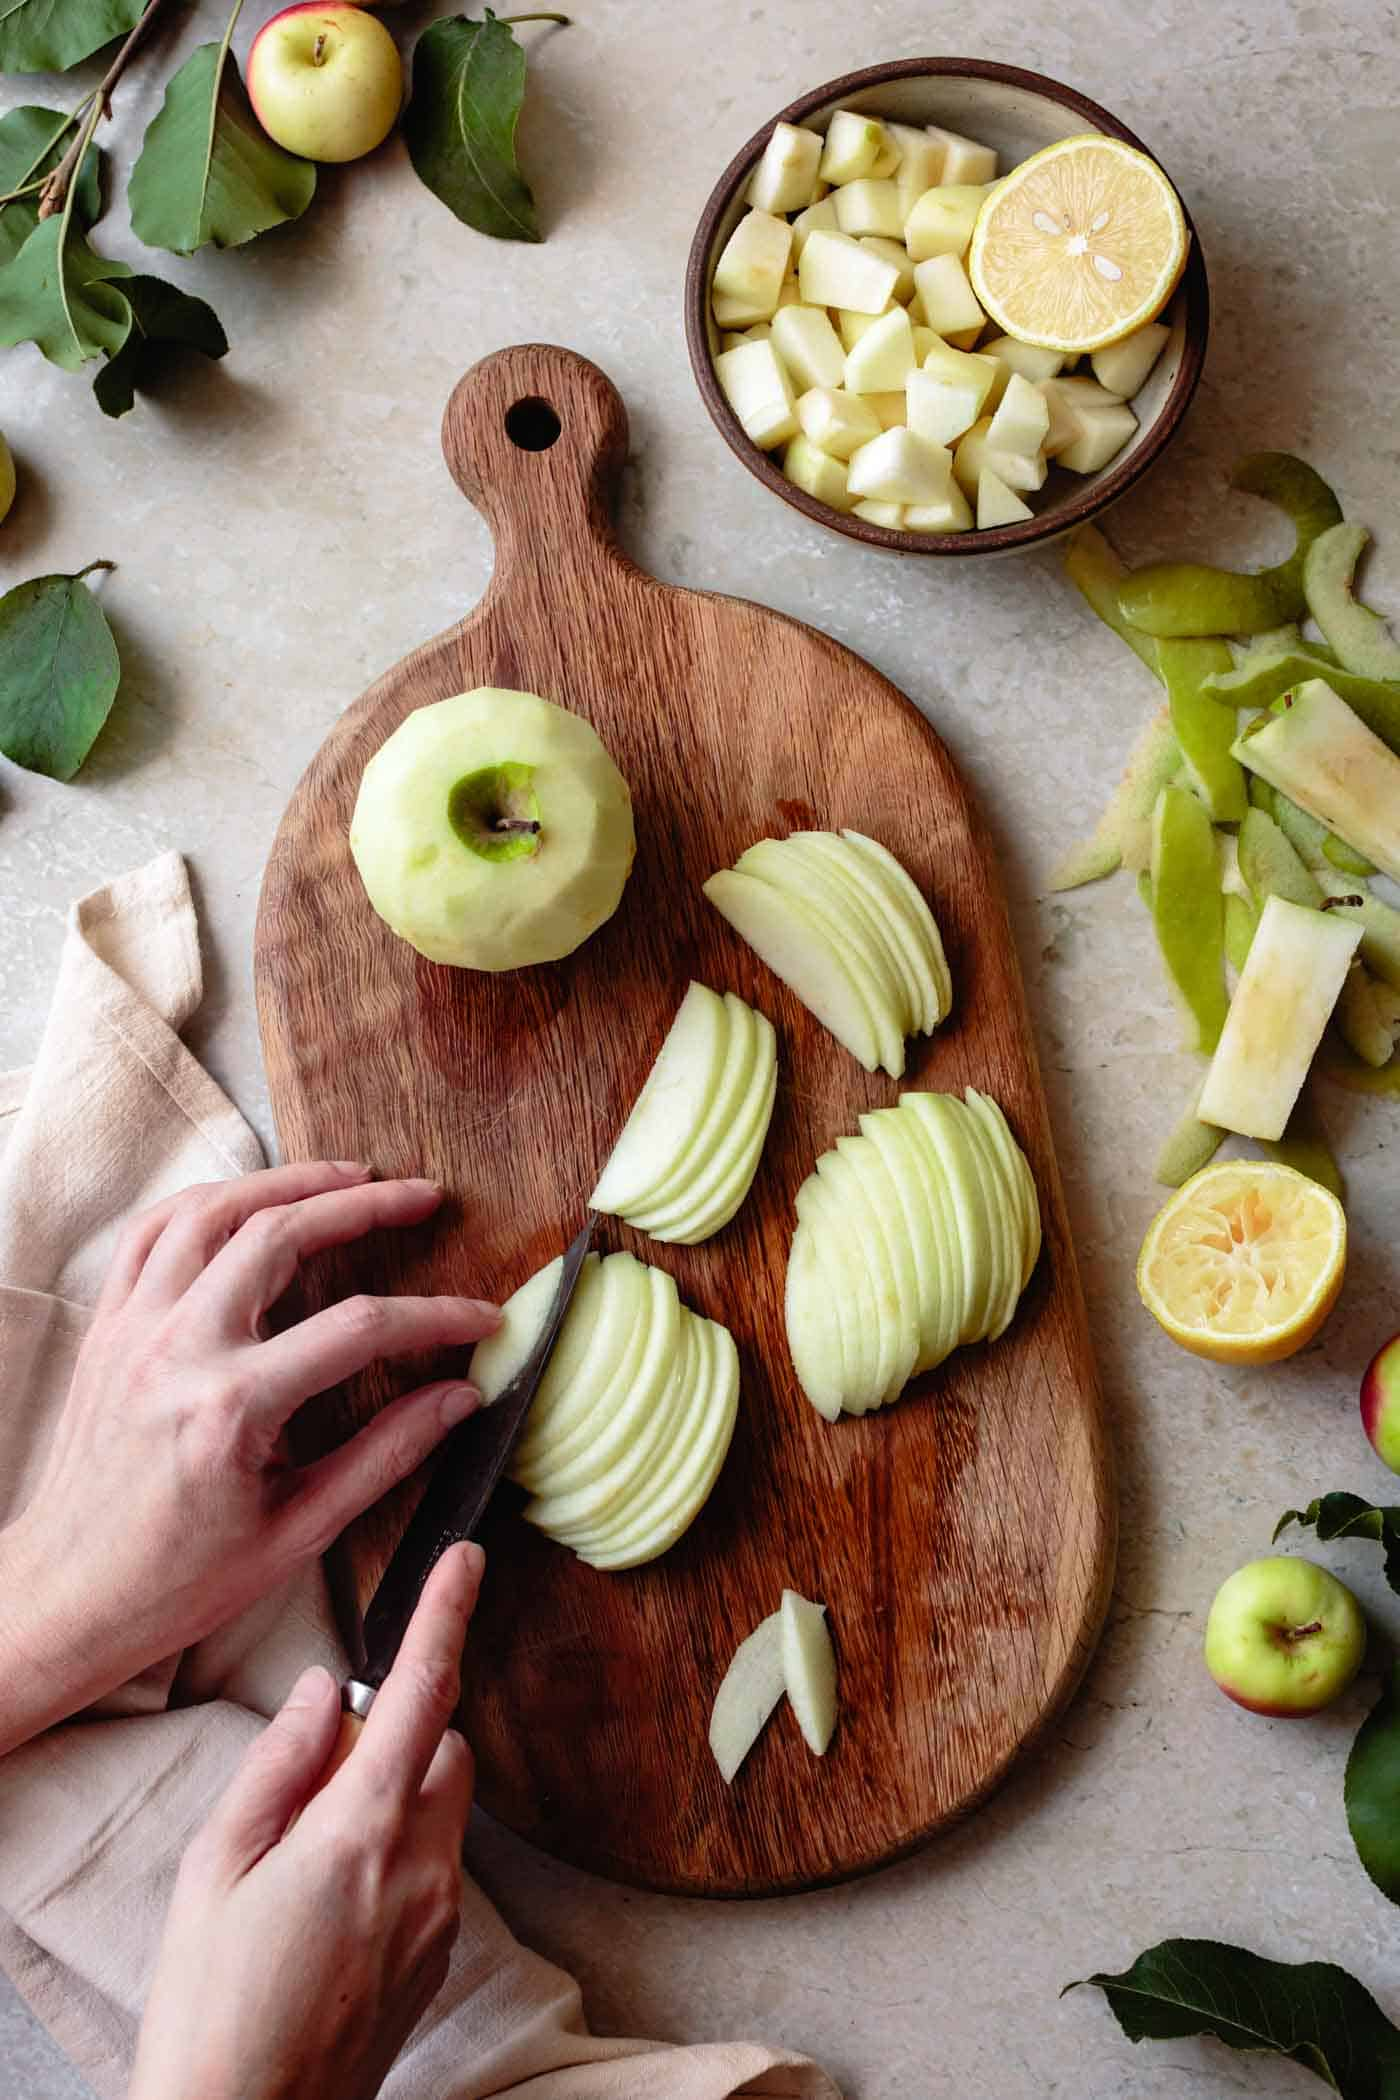 Cutting apples for easy gluten-free apple cake